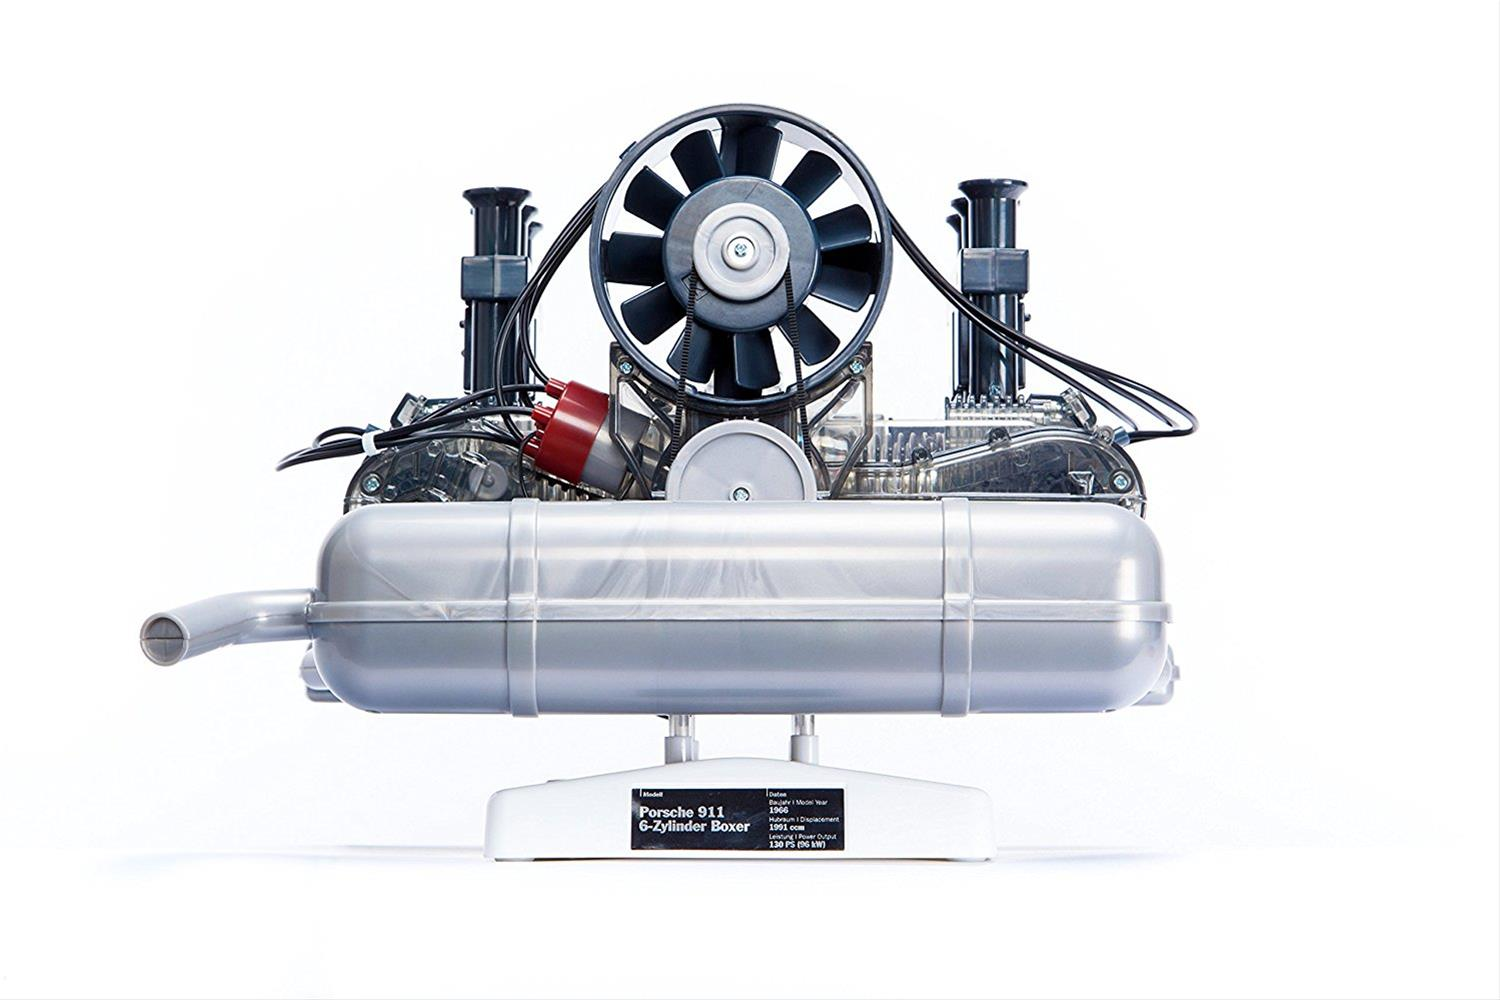 hight resolution of transparent porsche 911 flat six boxer engine model kit pe12 free shipping on orders over 99 at summit racing